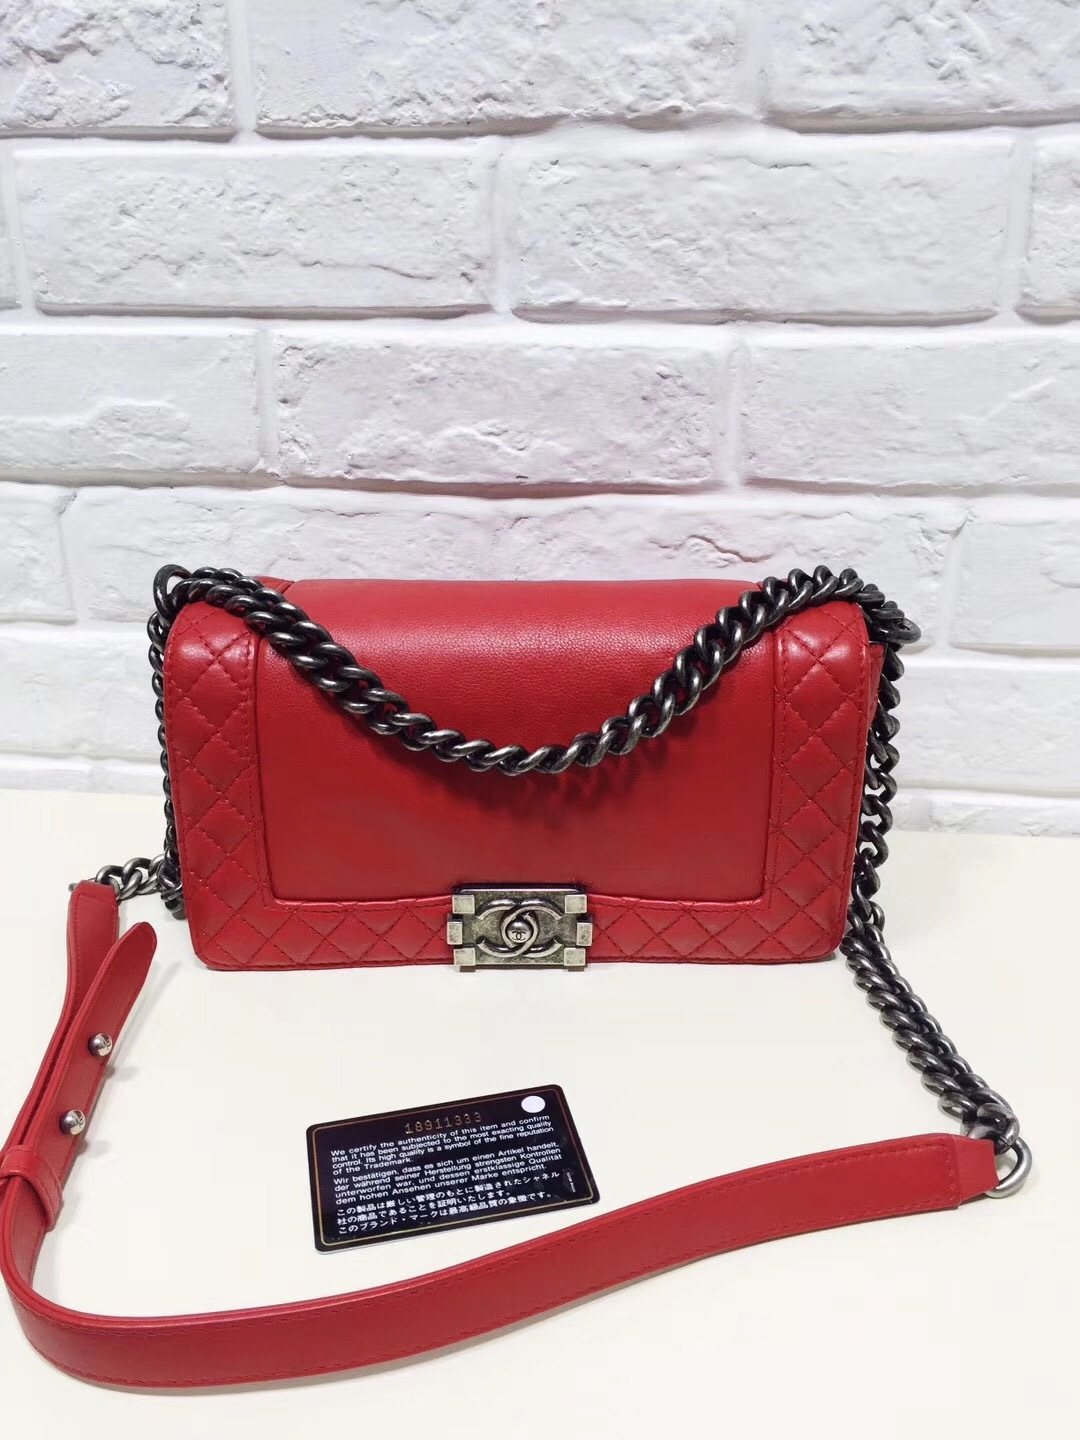 006178b7dfe9 AUTHENTIC CHANEL RED SMOOTH CALFSKIN REVERSO MEDIUM BOY FLAP BAG RHW ...